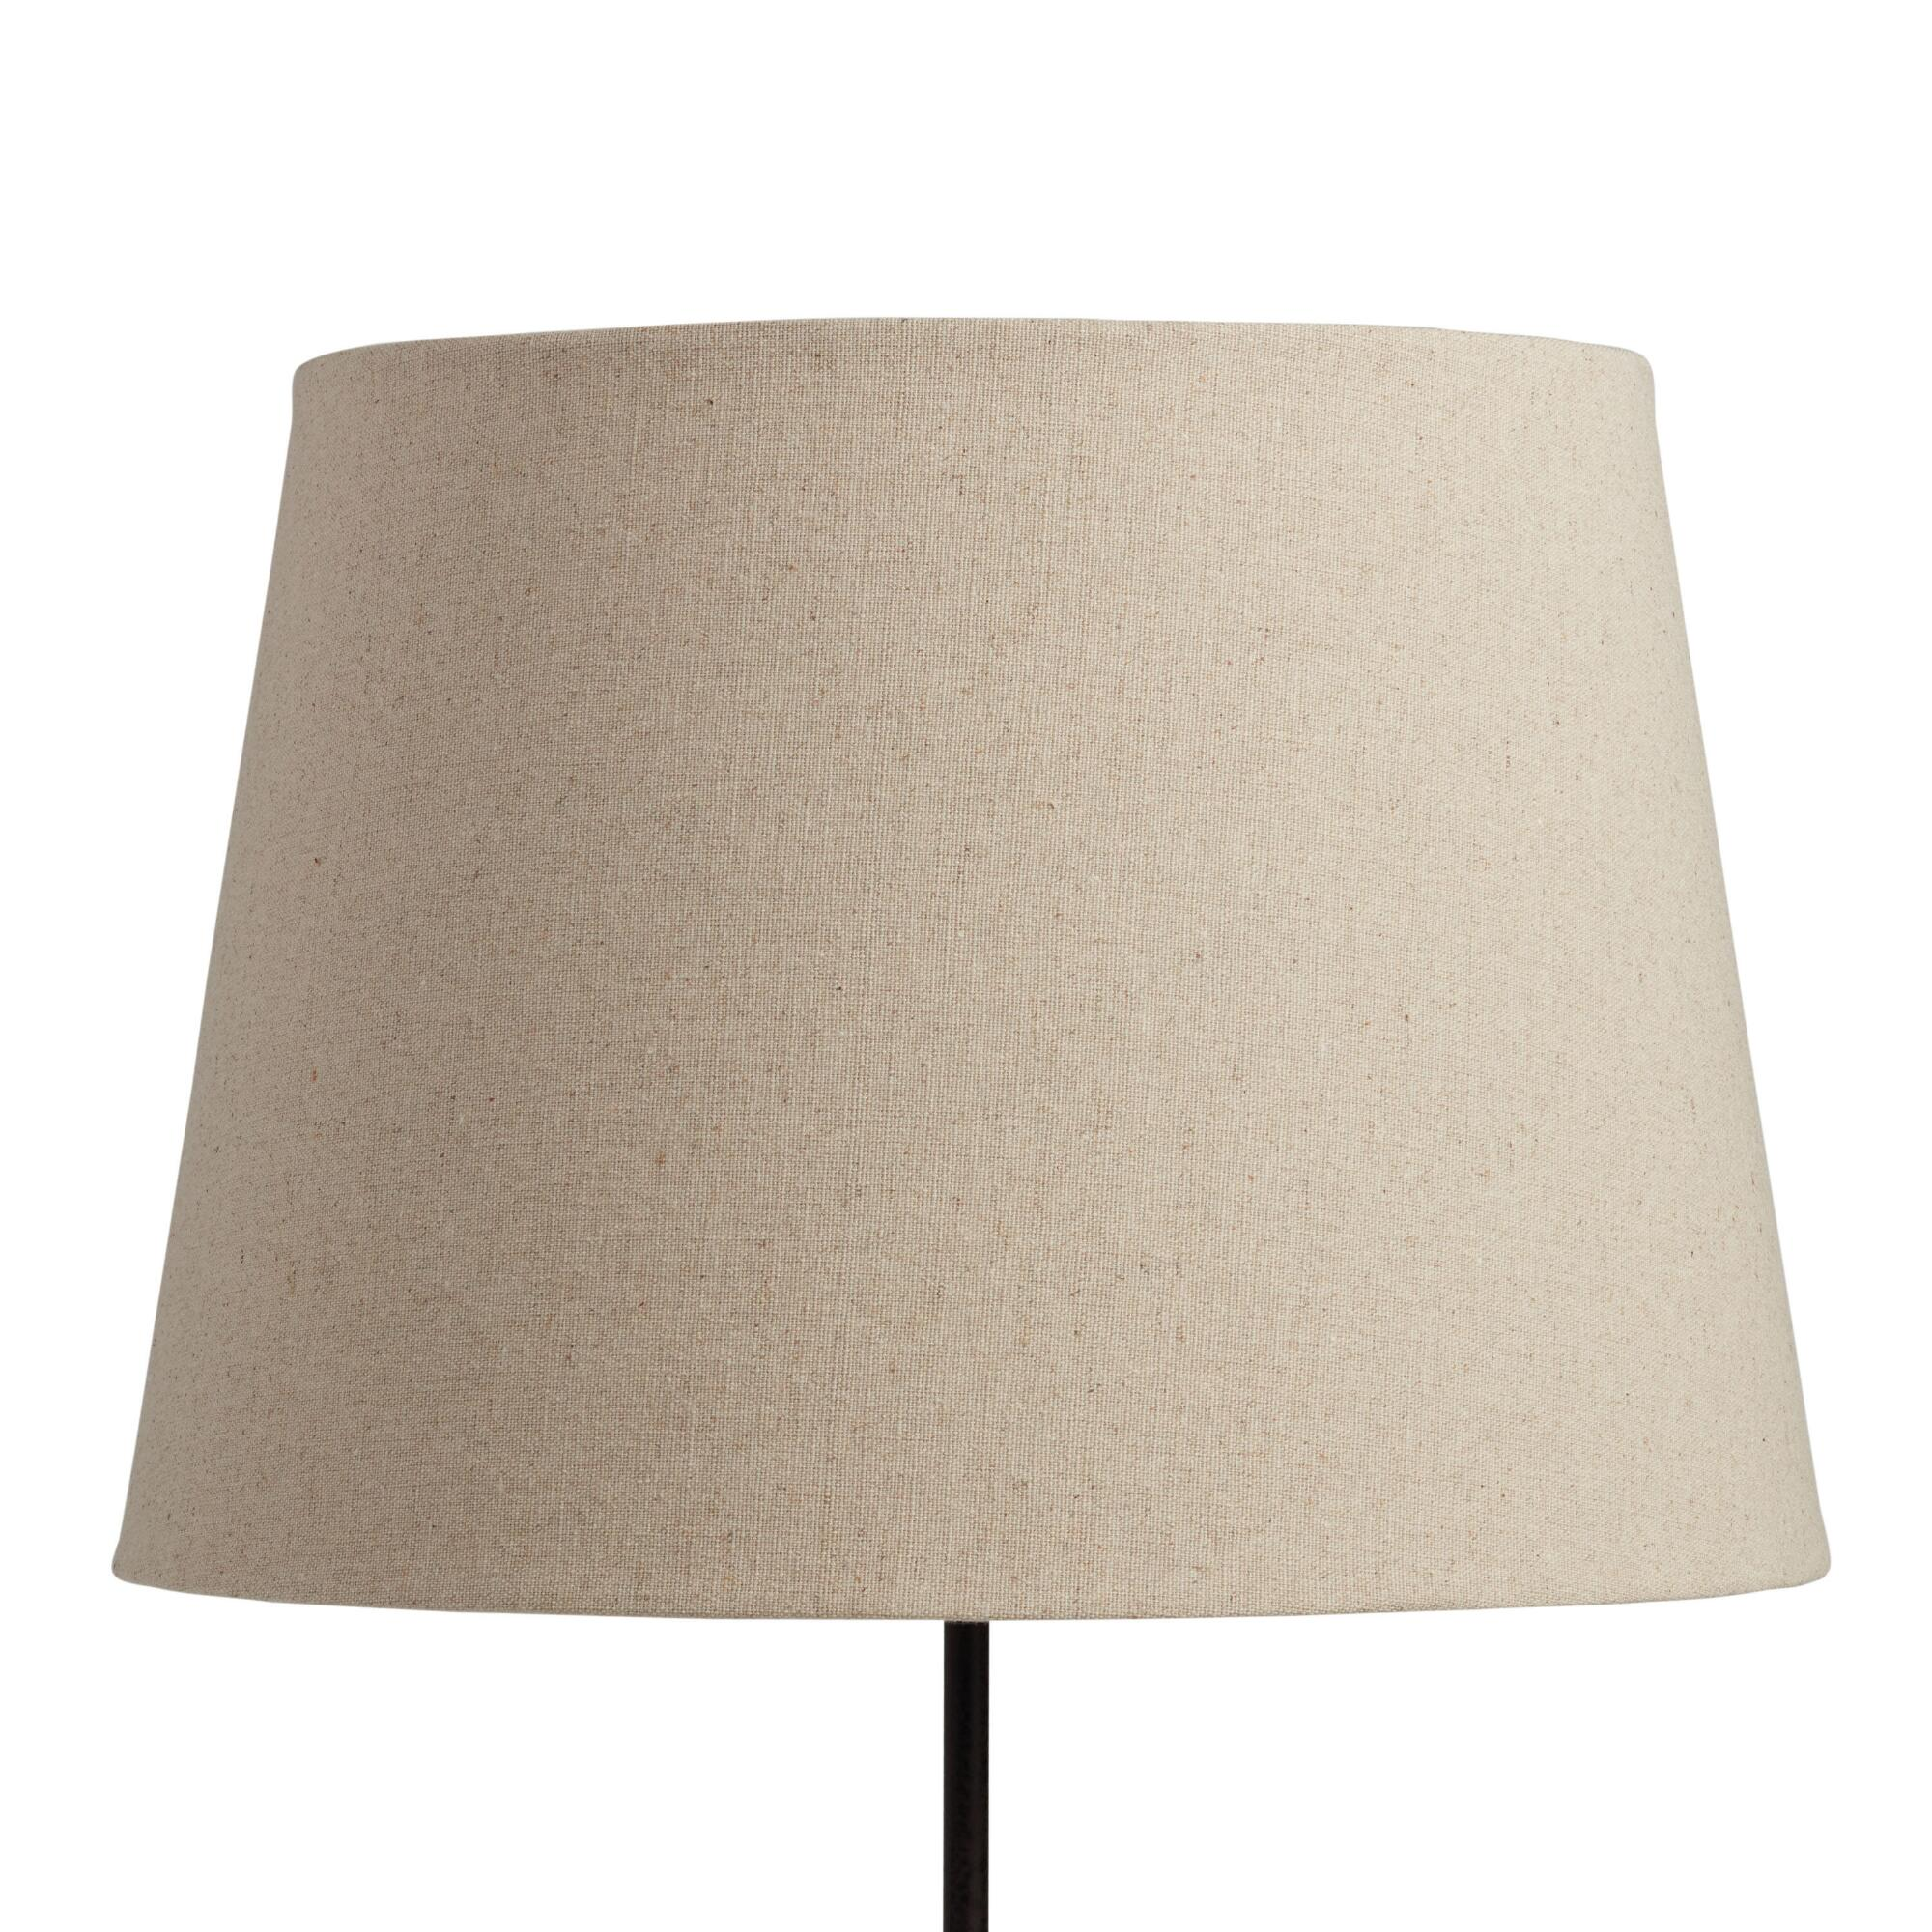 Linen Table Lamp Shade: Natural - Fabric by World Market